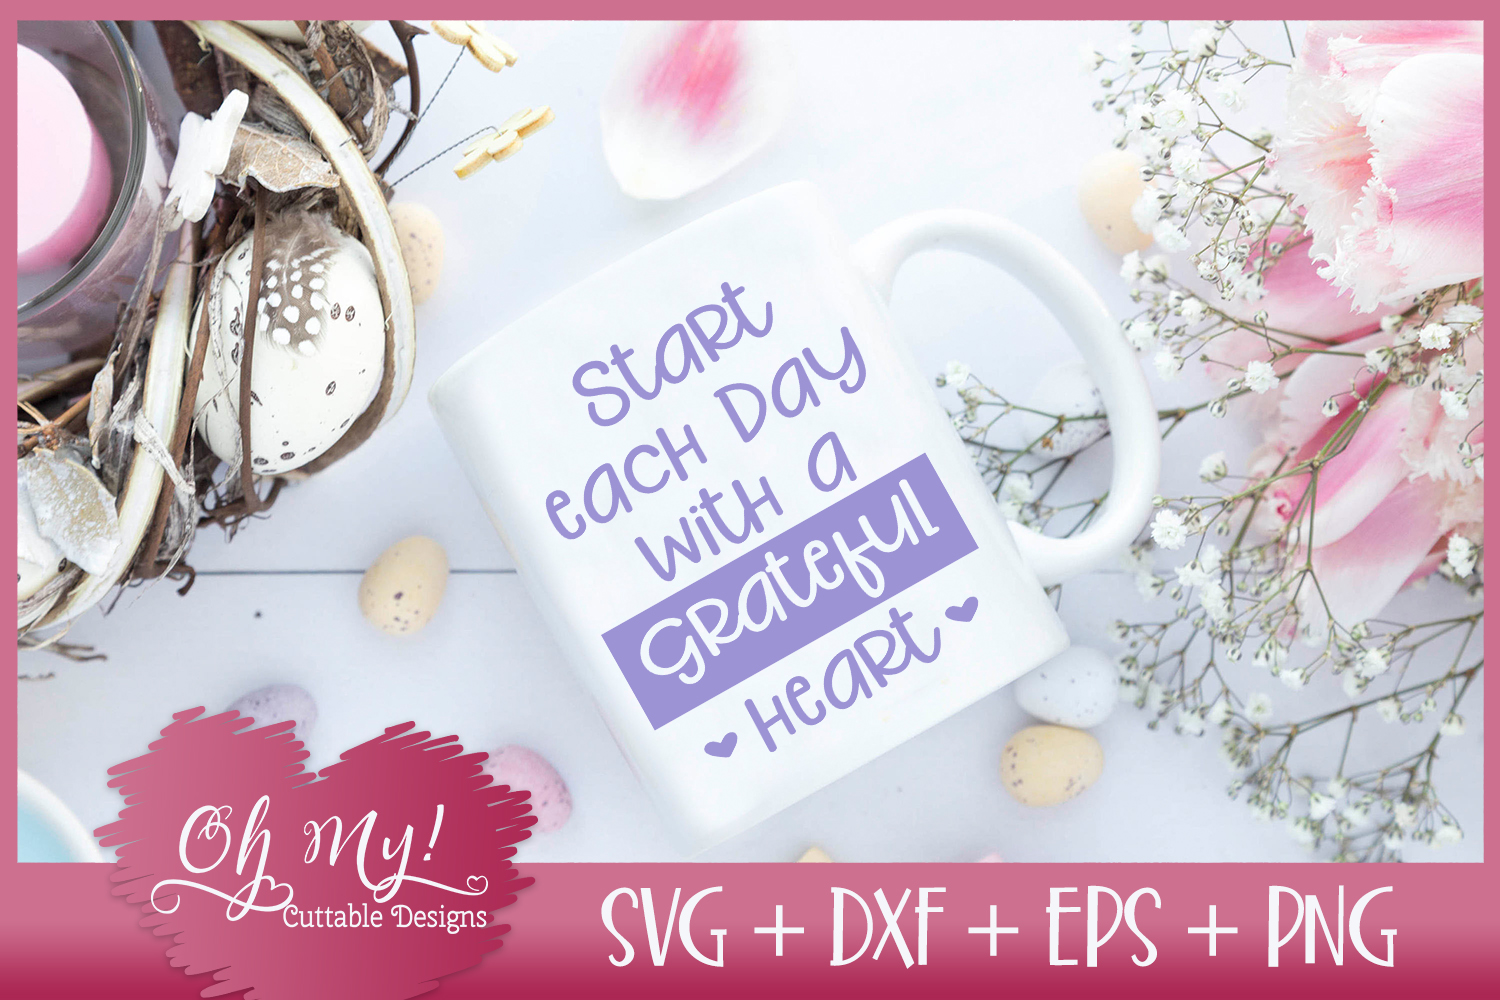 Start Each Day With A Grateful Heart - SVG DXF EPS PNG C example image 2